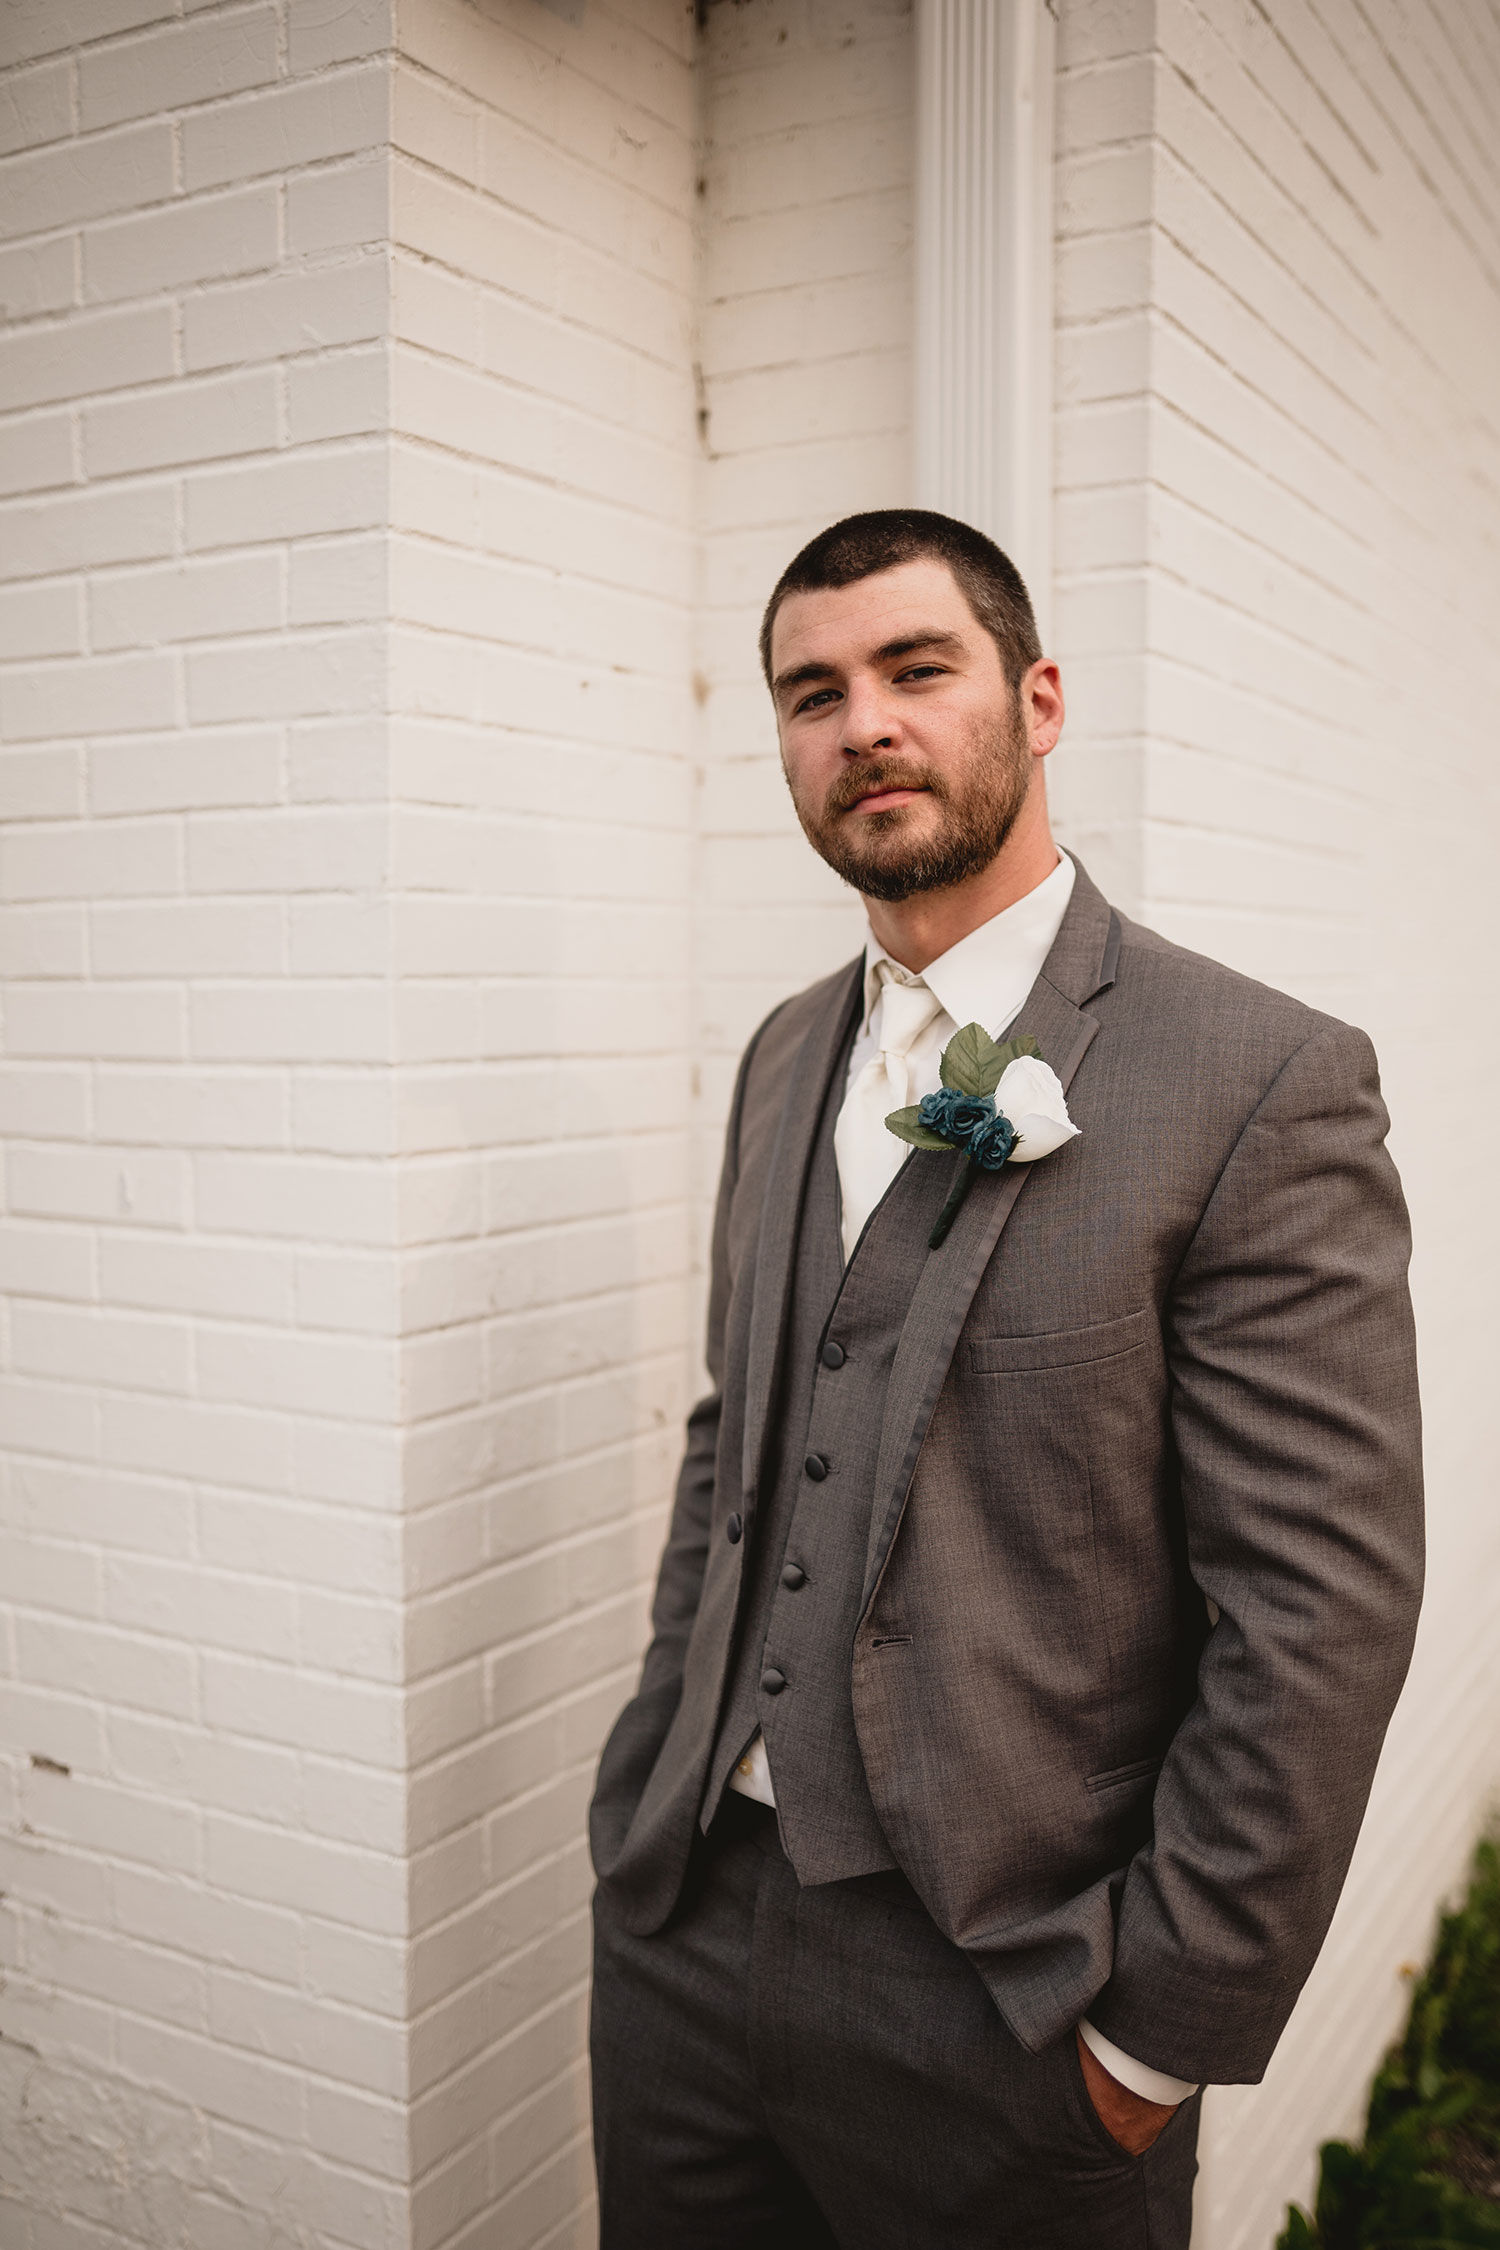 groom-posing-in-front-of-white-brick-wall-decades-event-center-building-desmoines-iowa-raelyn-ramey-photography..jpg